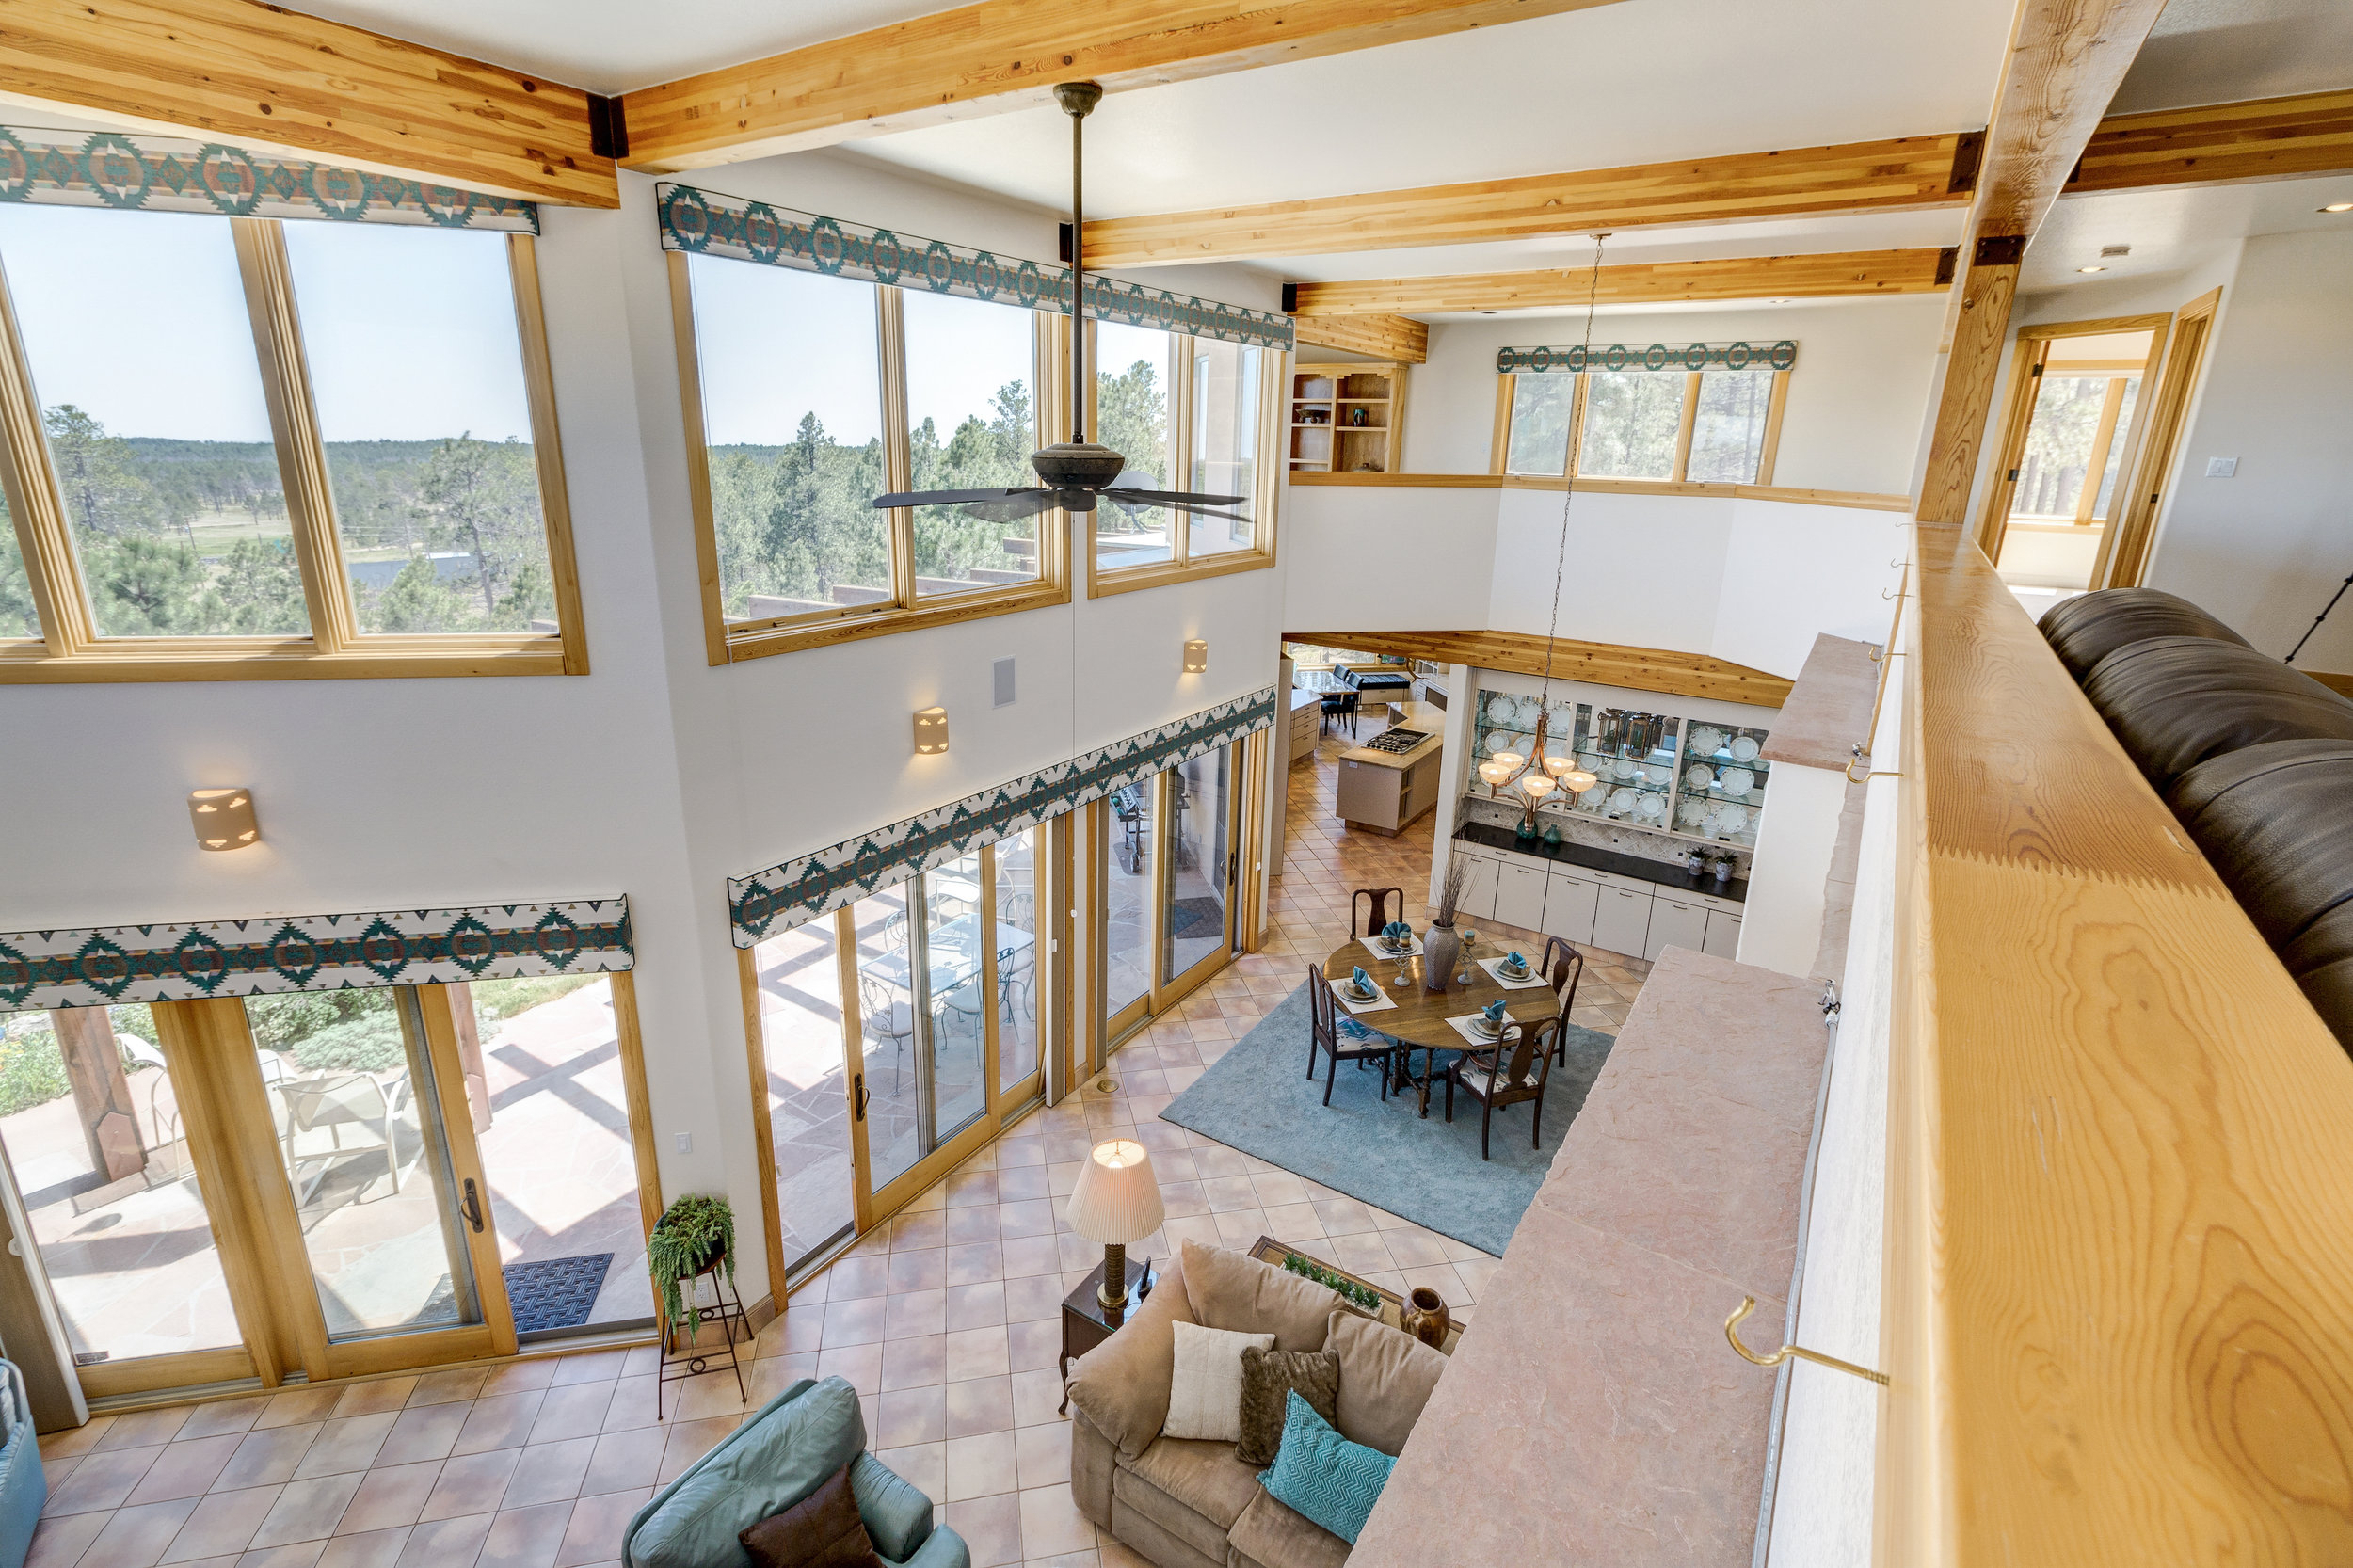 23-Upstairs Overview.jpg